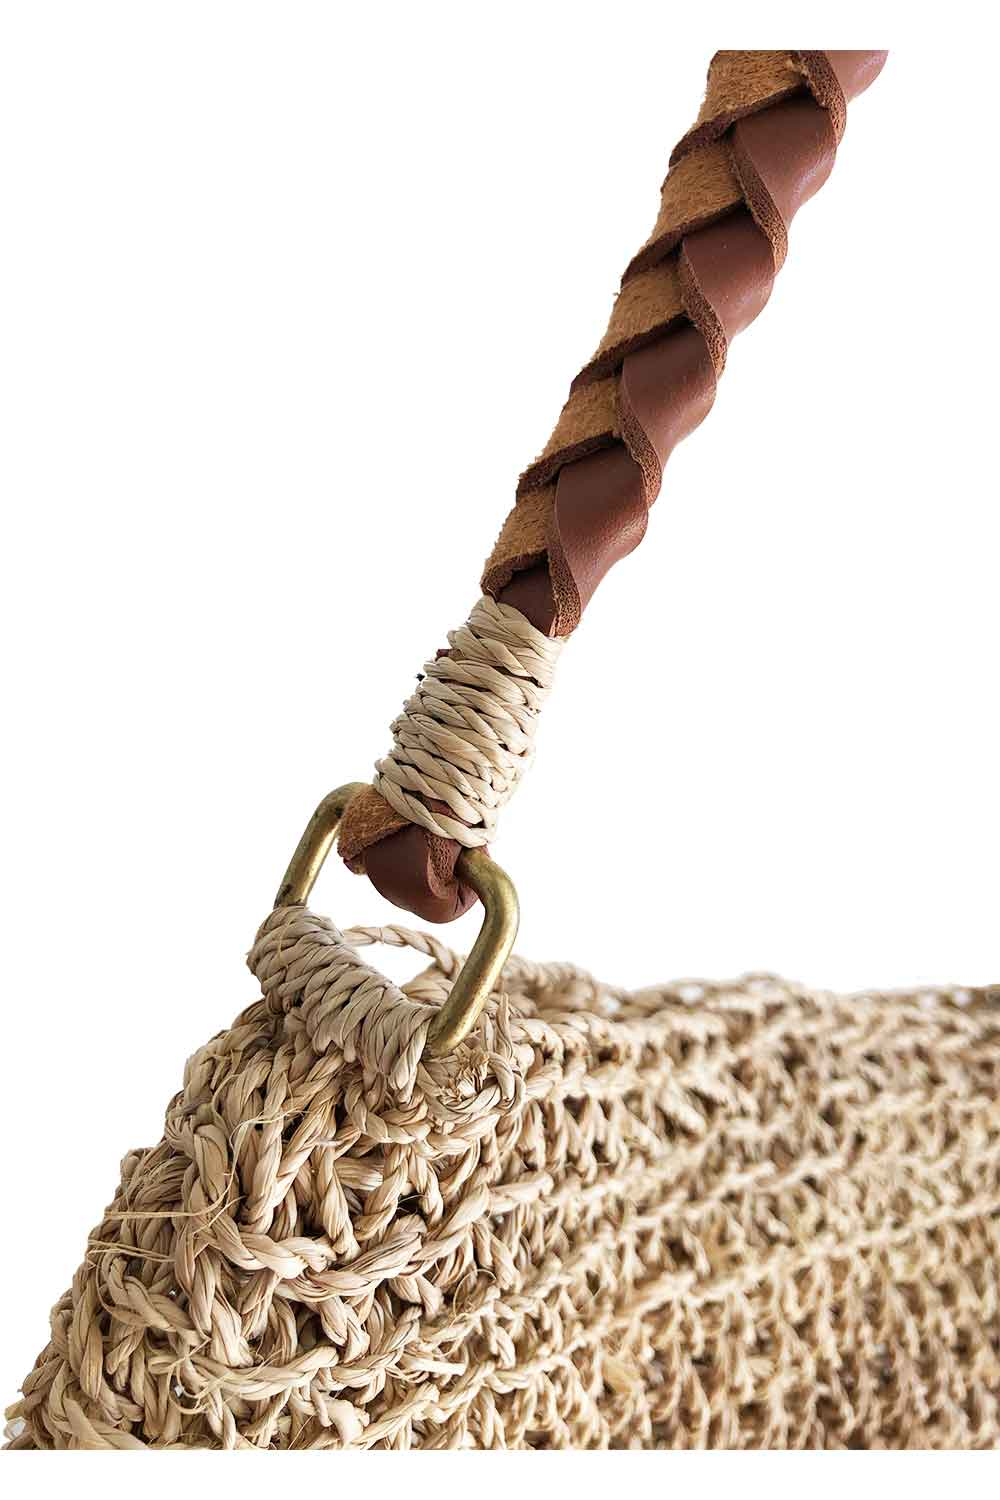 Sanbasic Woven Plaited Hand Bag